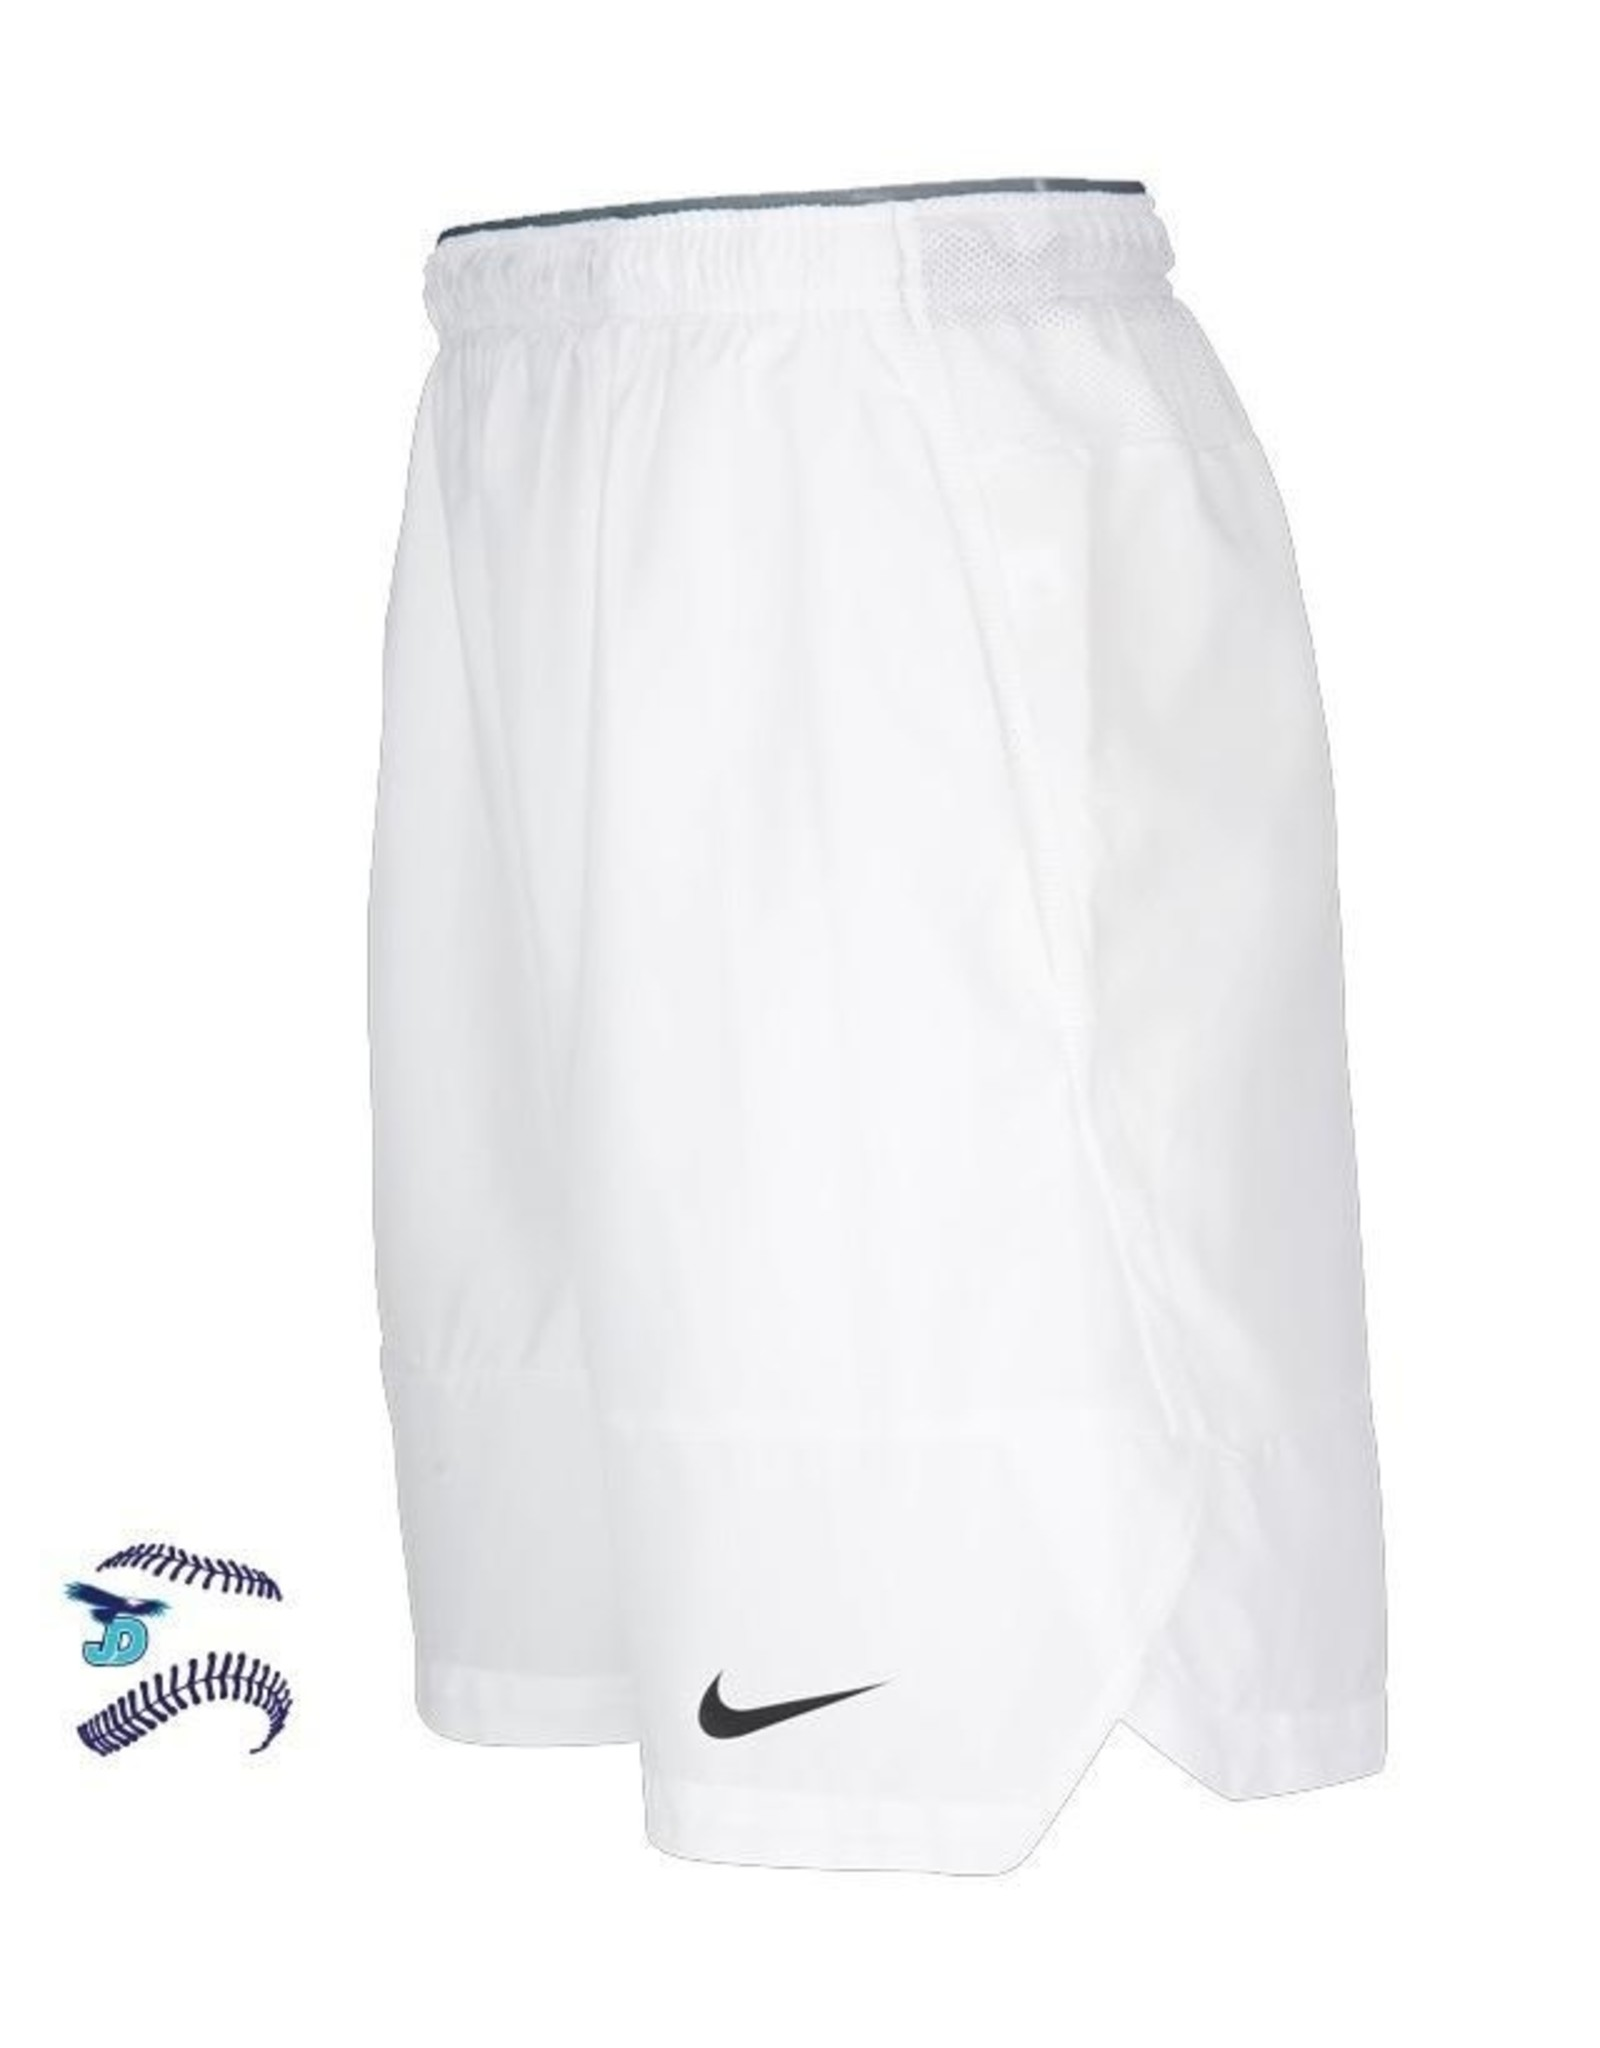 NON-UNIFORM Nike Team Untouchable Woven Shorts - JD Baseball, Men's